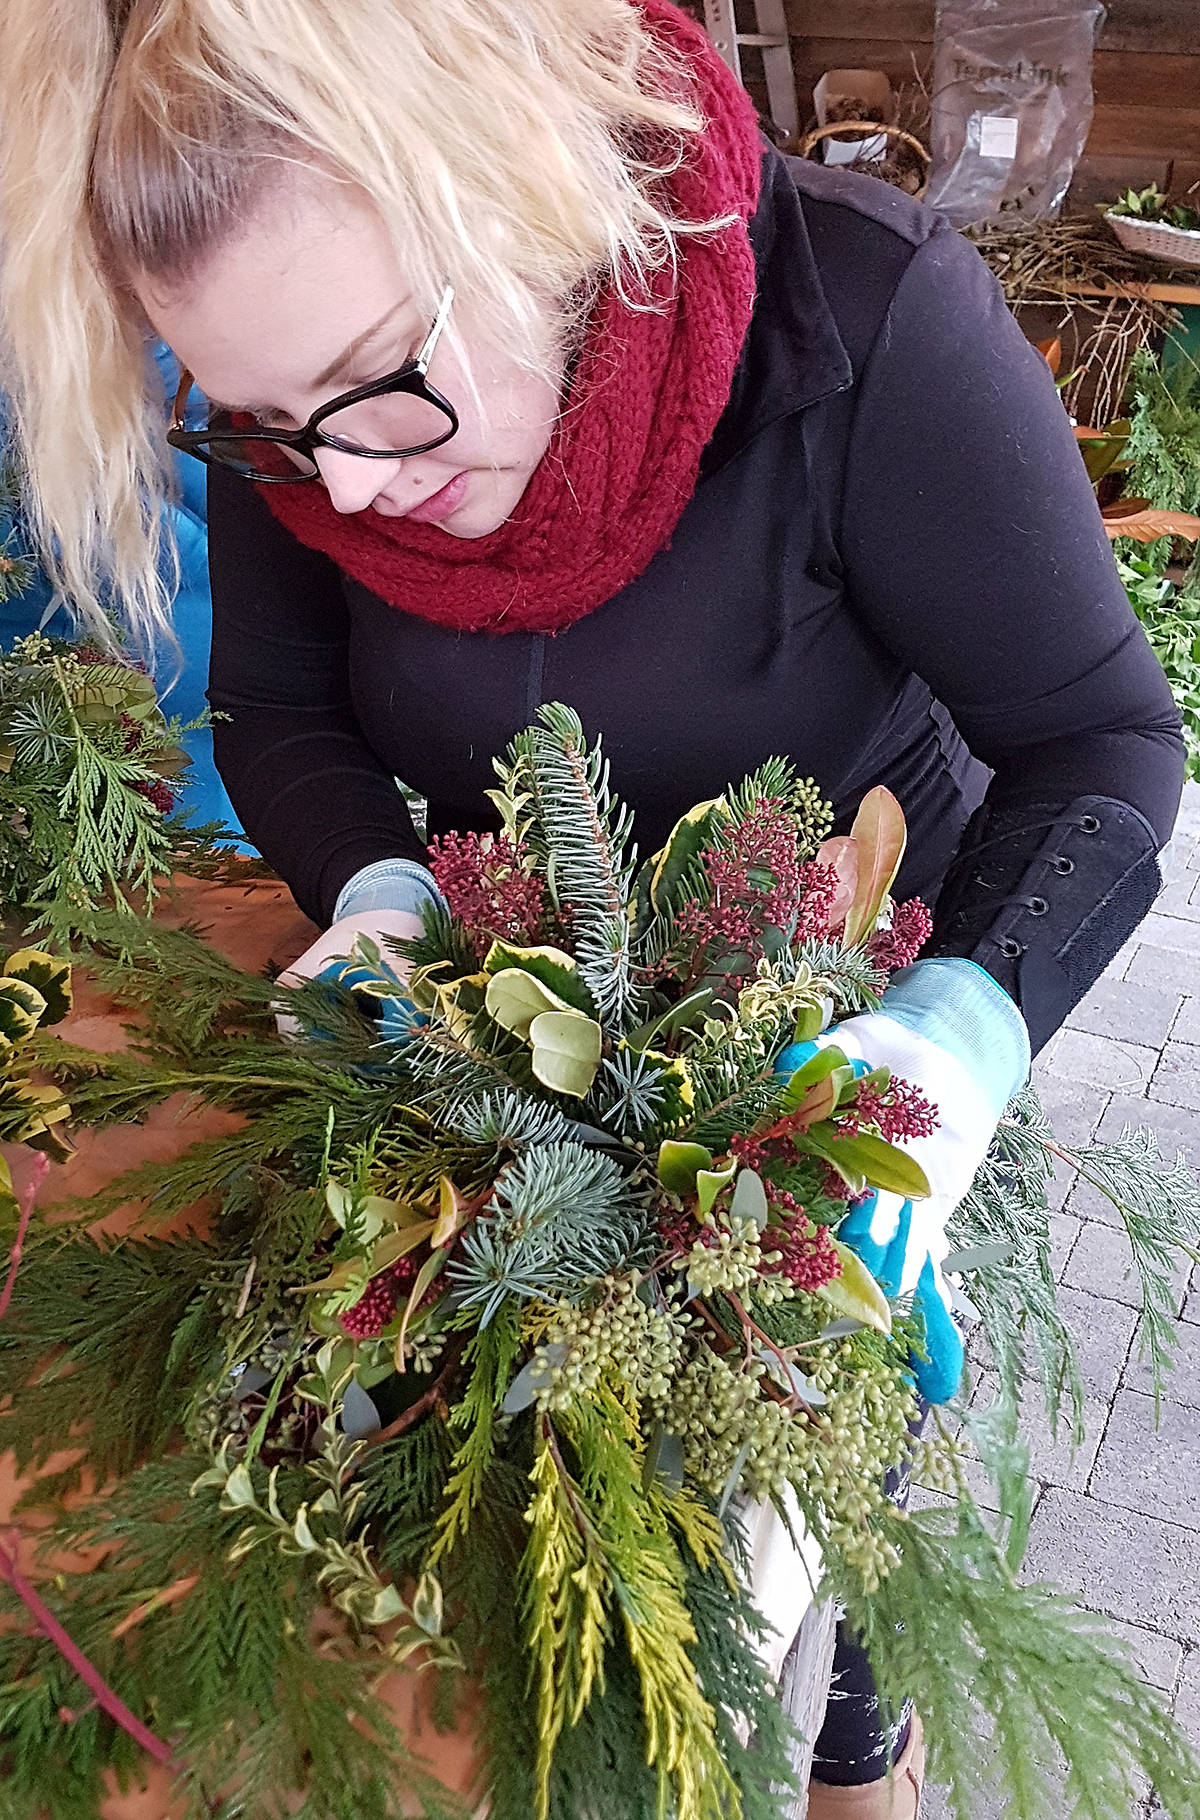 Jessica created a centrepiece out of clippings from the garden. (Pam Erikson/Special to Black Press Media)